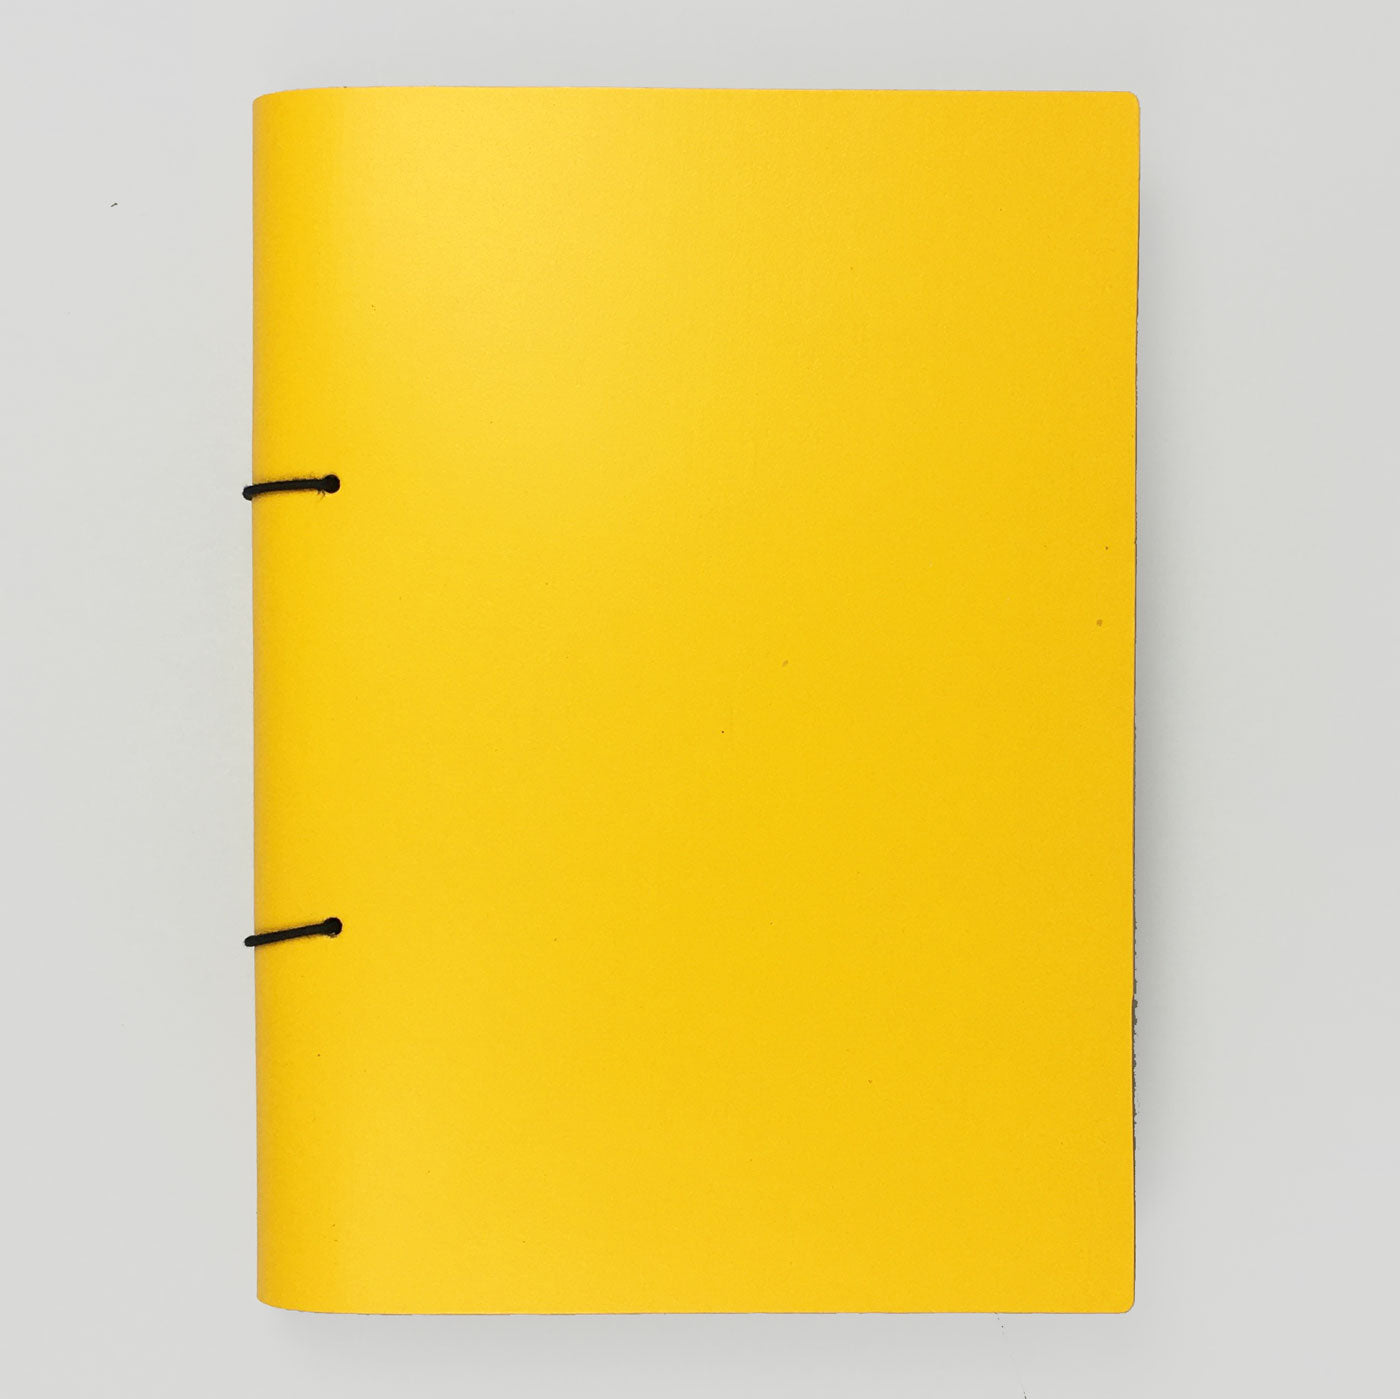 Artbox Notebook Yellow - Medium